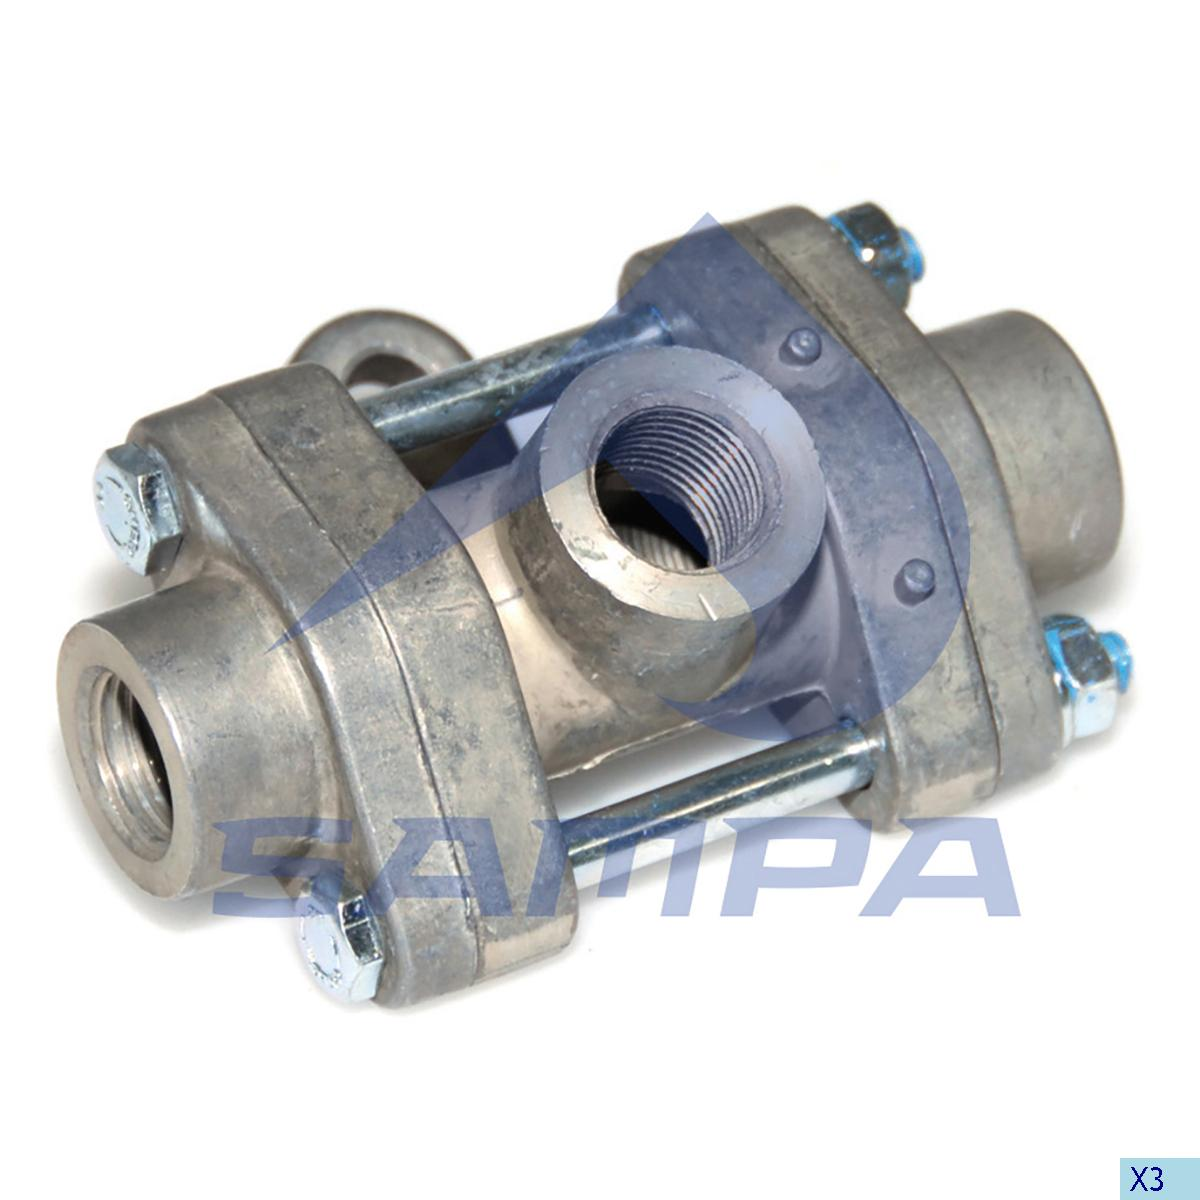 Check Valve, Universal, Compressed Air System